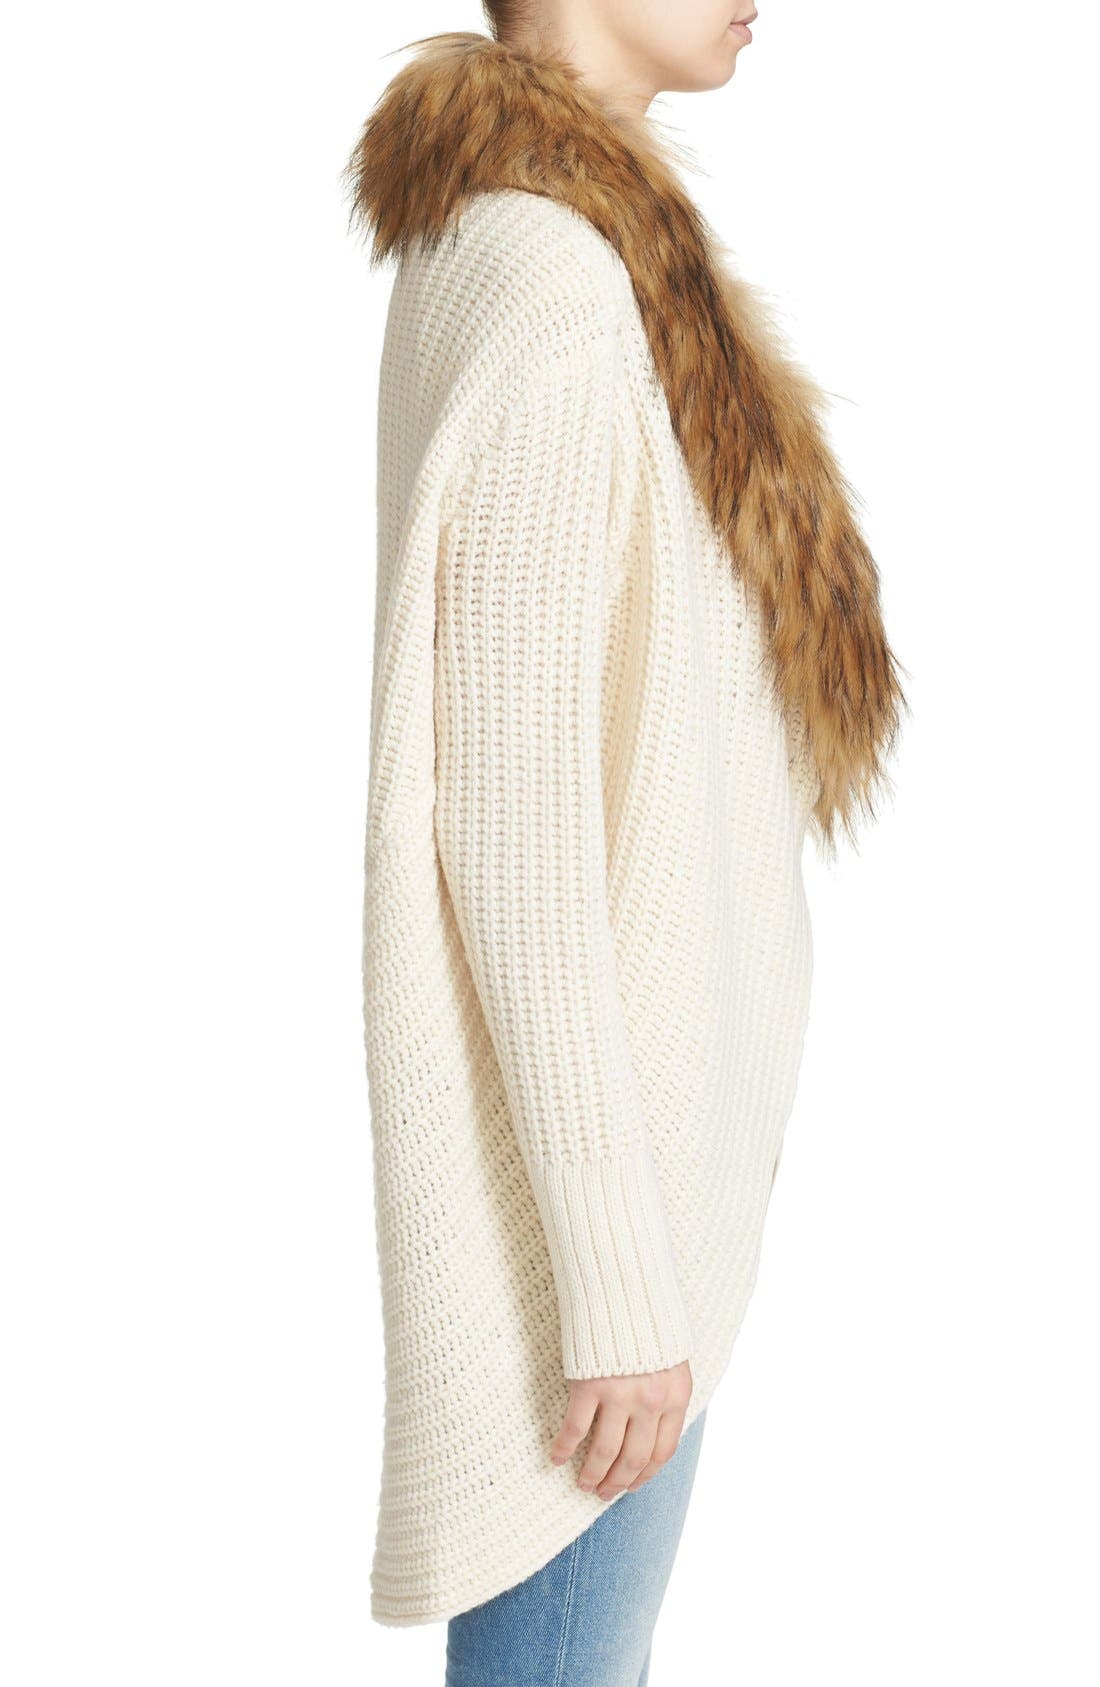 'Helma' Wool & Yak Cardigan with Faux Fur Collar,                             Alternate thumbnail 3, color,                             120